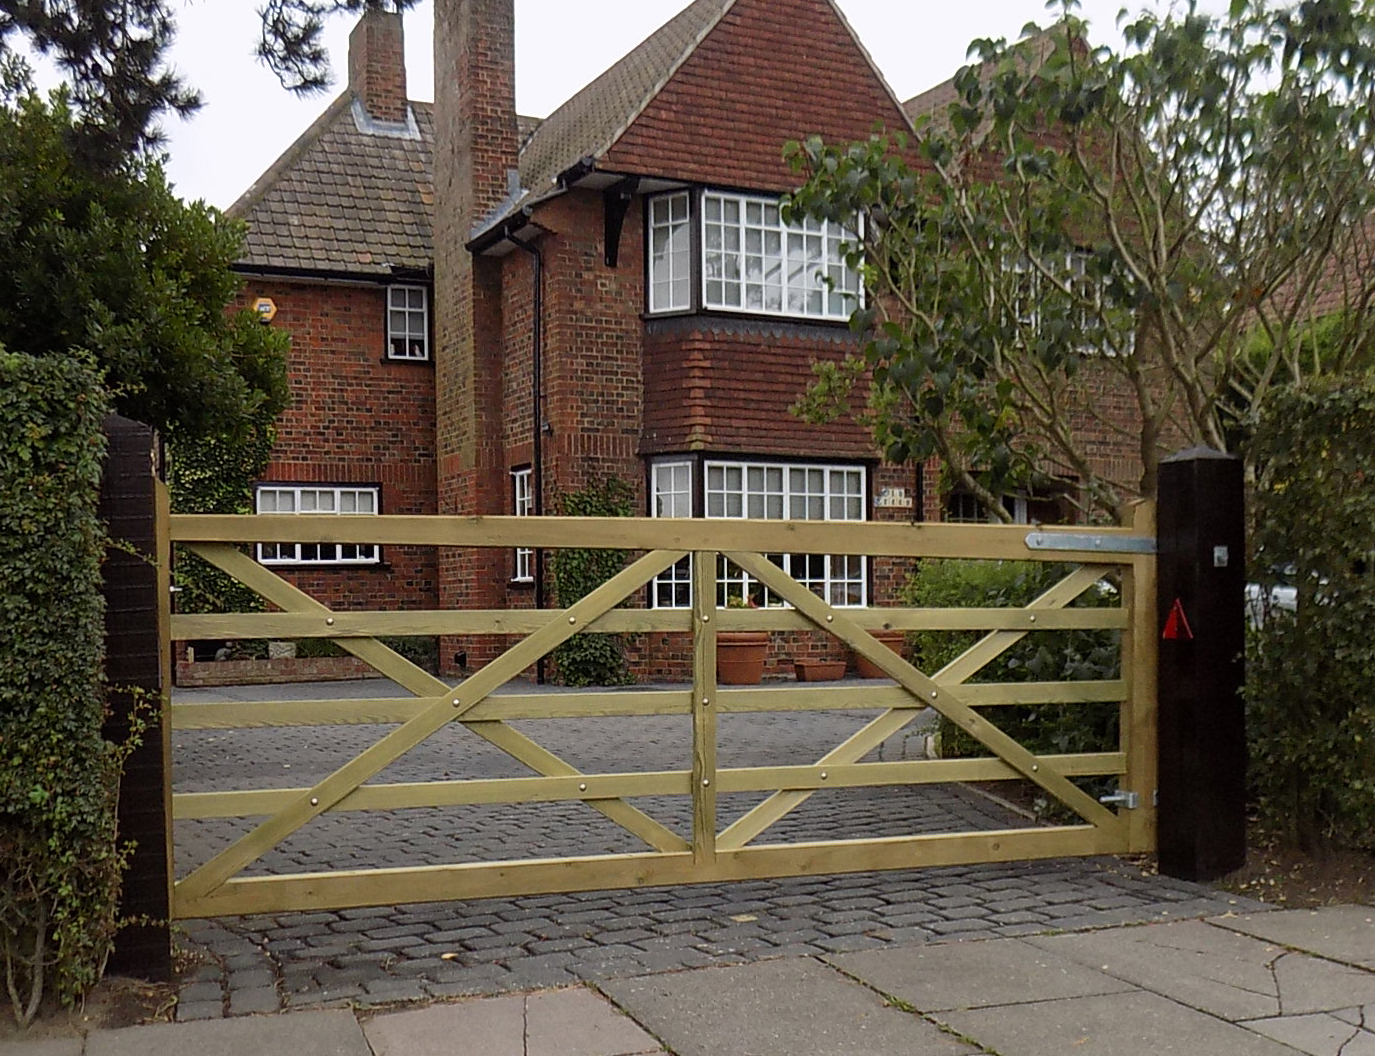 Kennet 5 bar gate with heavy base rail